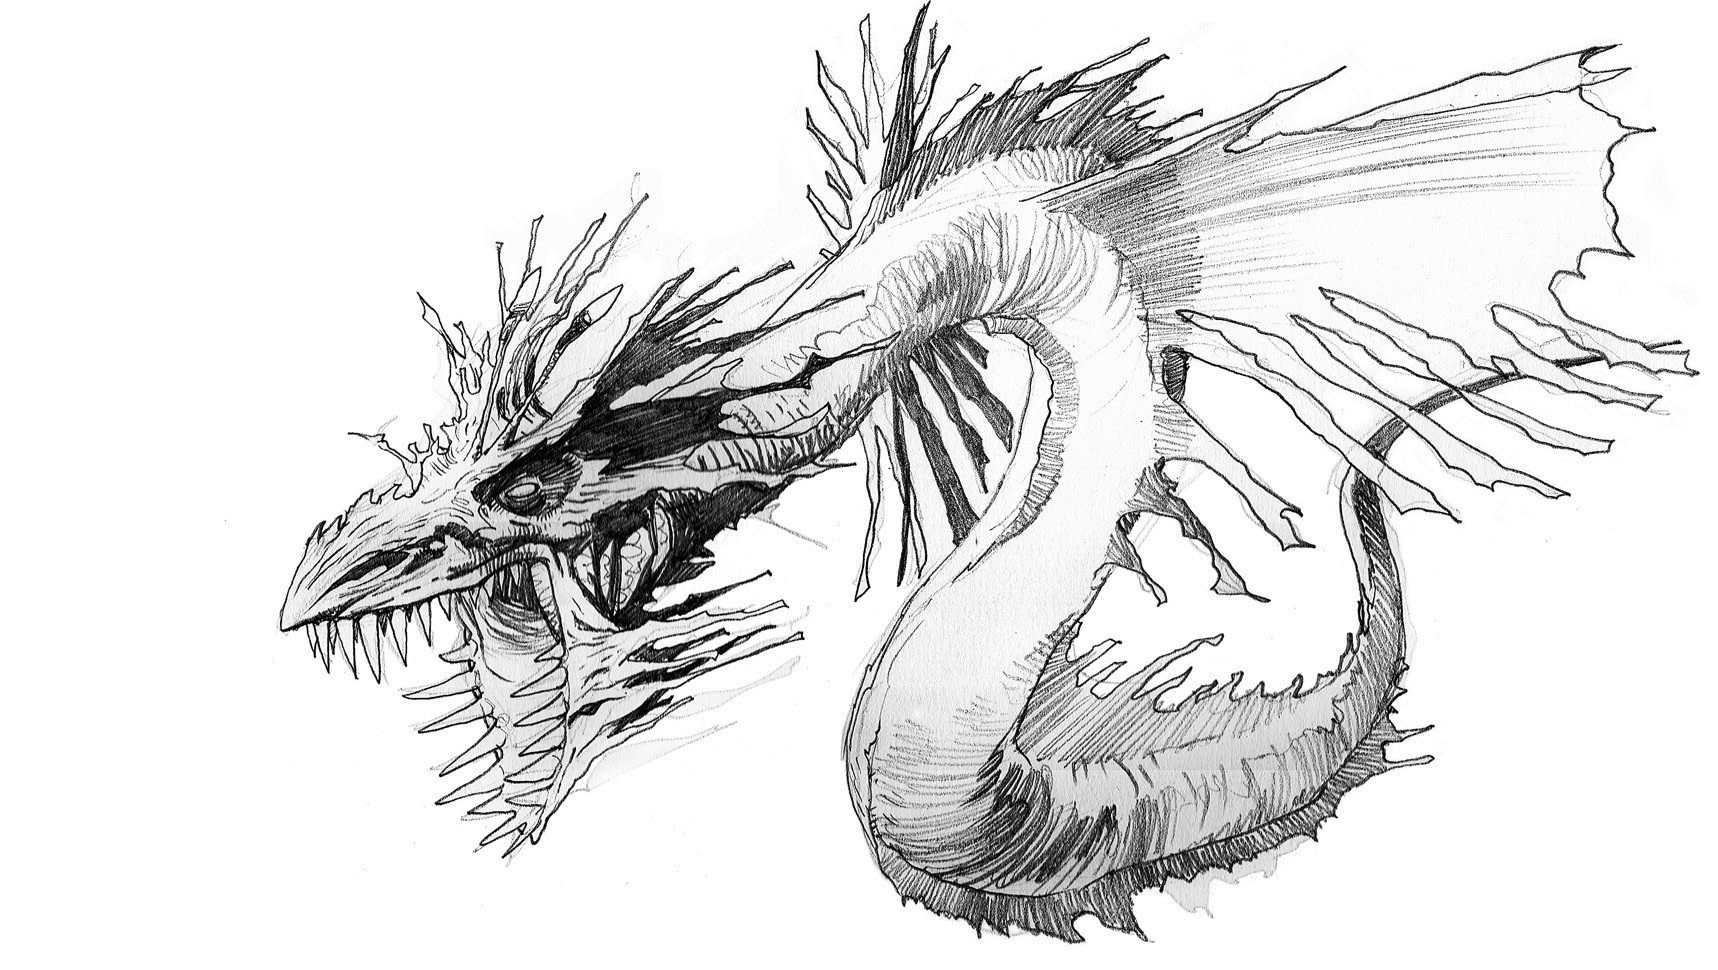 How To Draw Sea Dragon · Extract from Fantastic Creatures